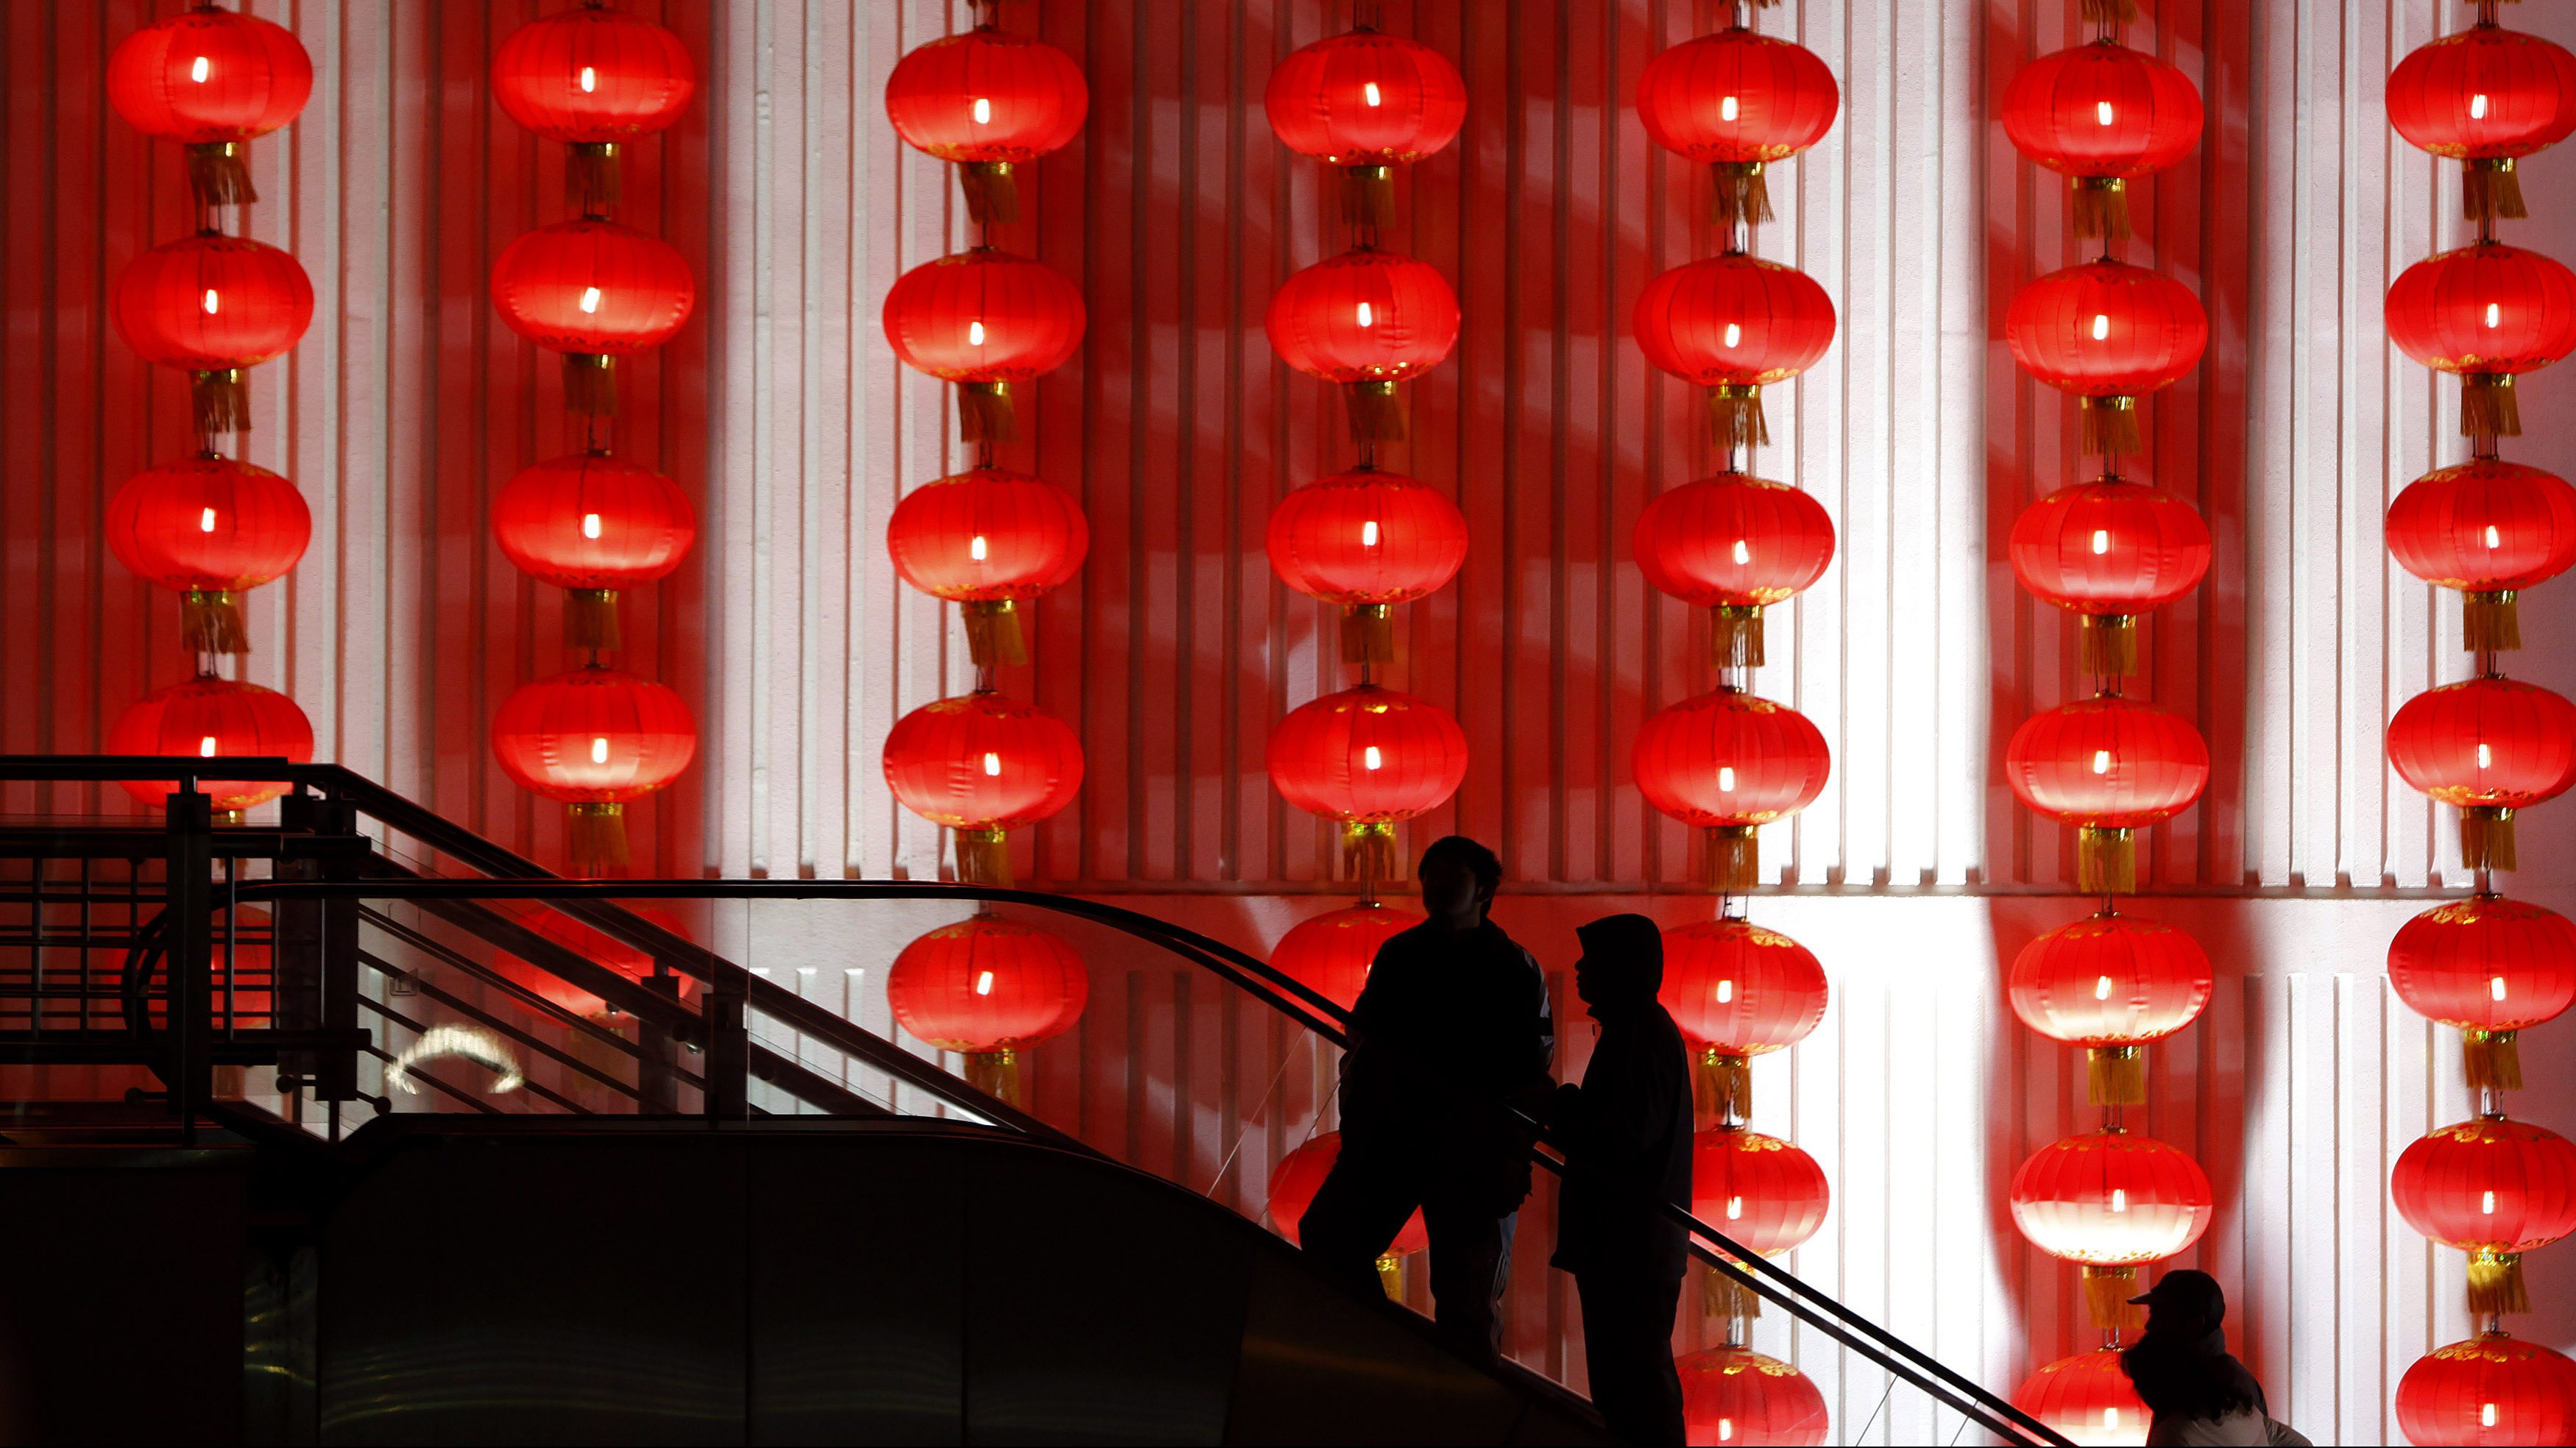 People walk past decorative red lanterns ahead of the New Year celebrations in Shanghai